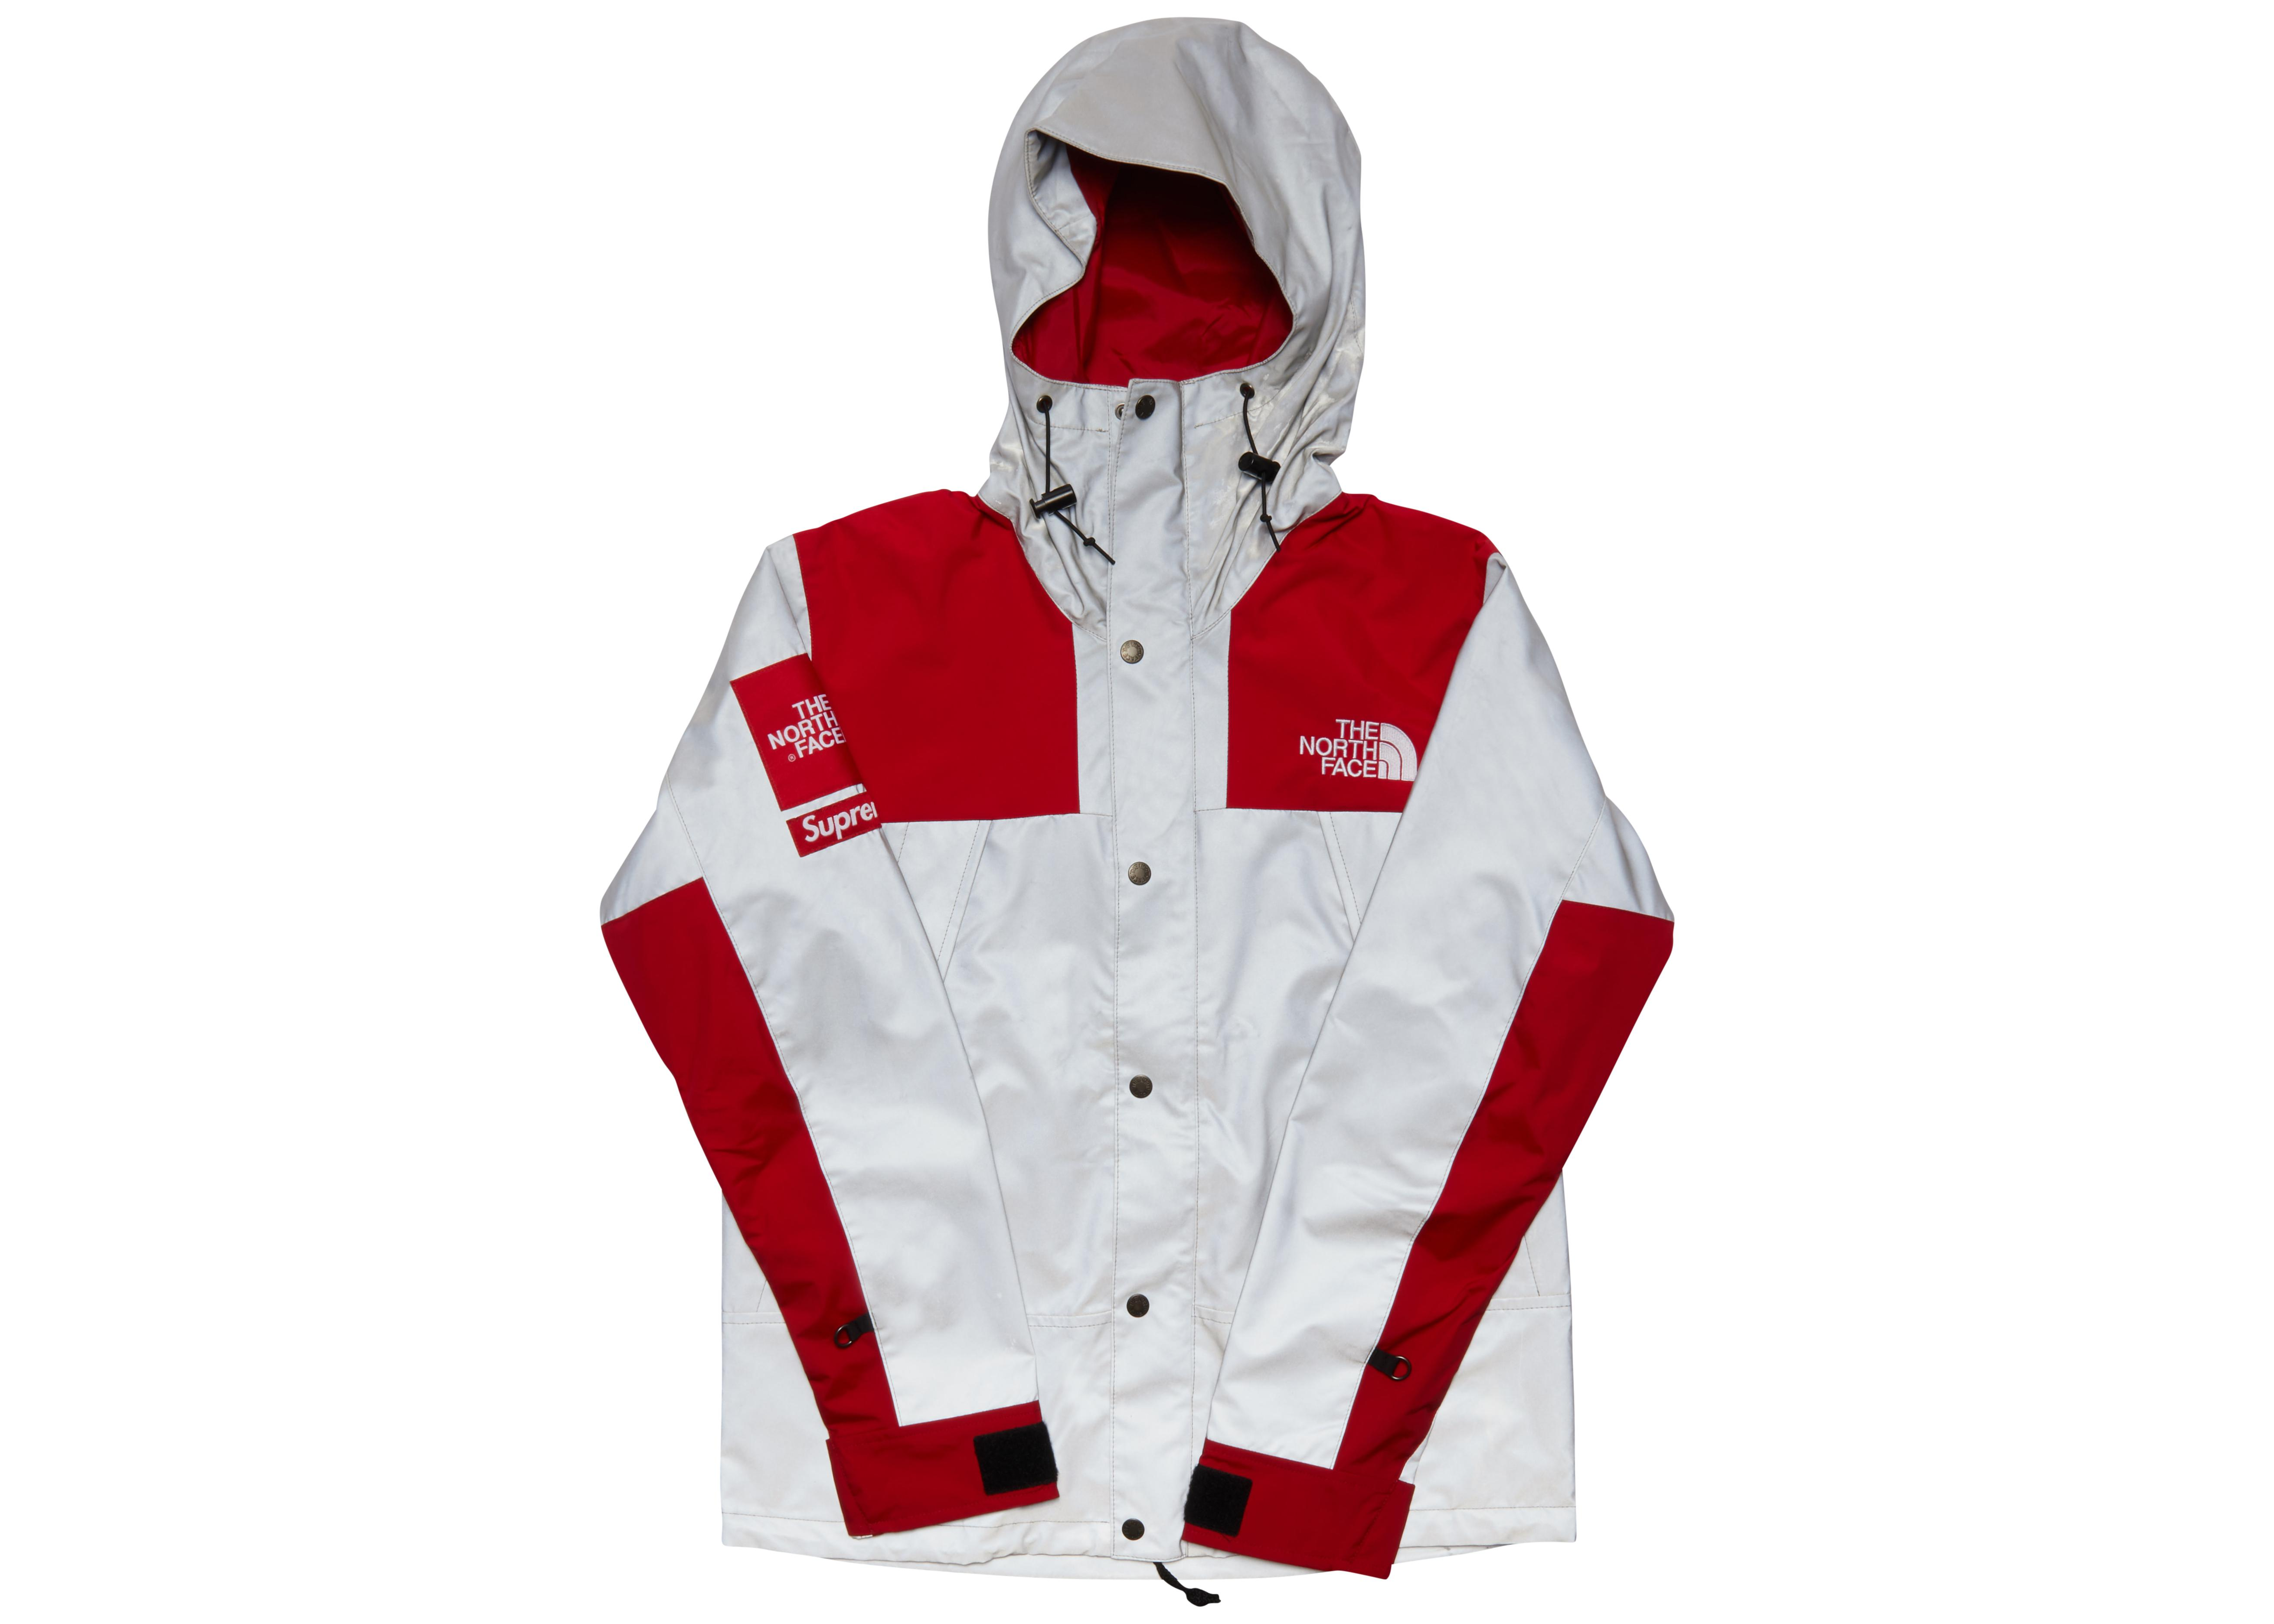 Lyst - Supreme The North Face 3m Reflective Mountain Jacket Red in ... 7ee30c5a4